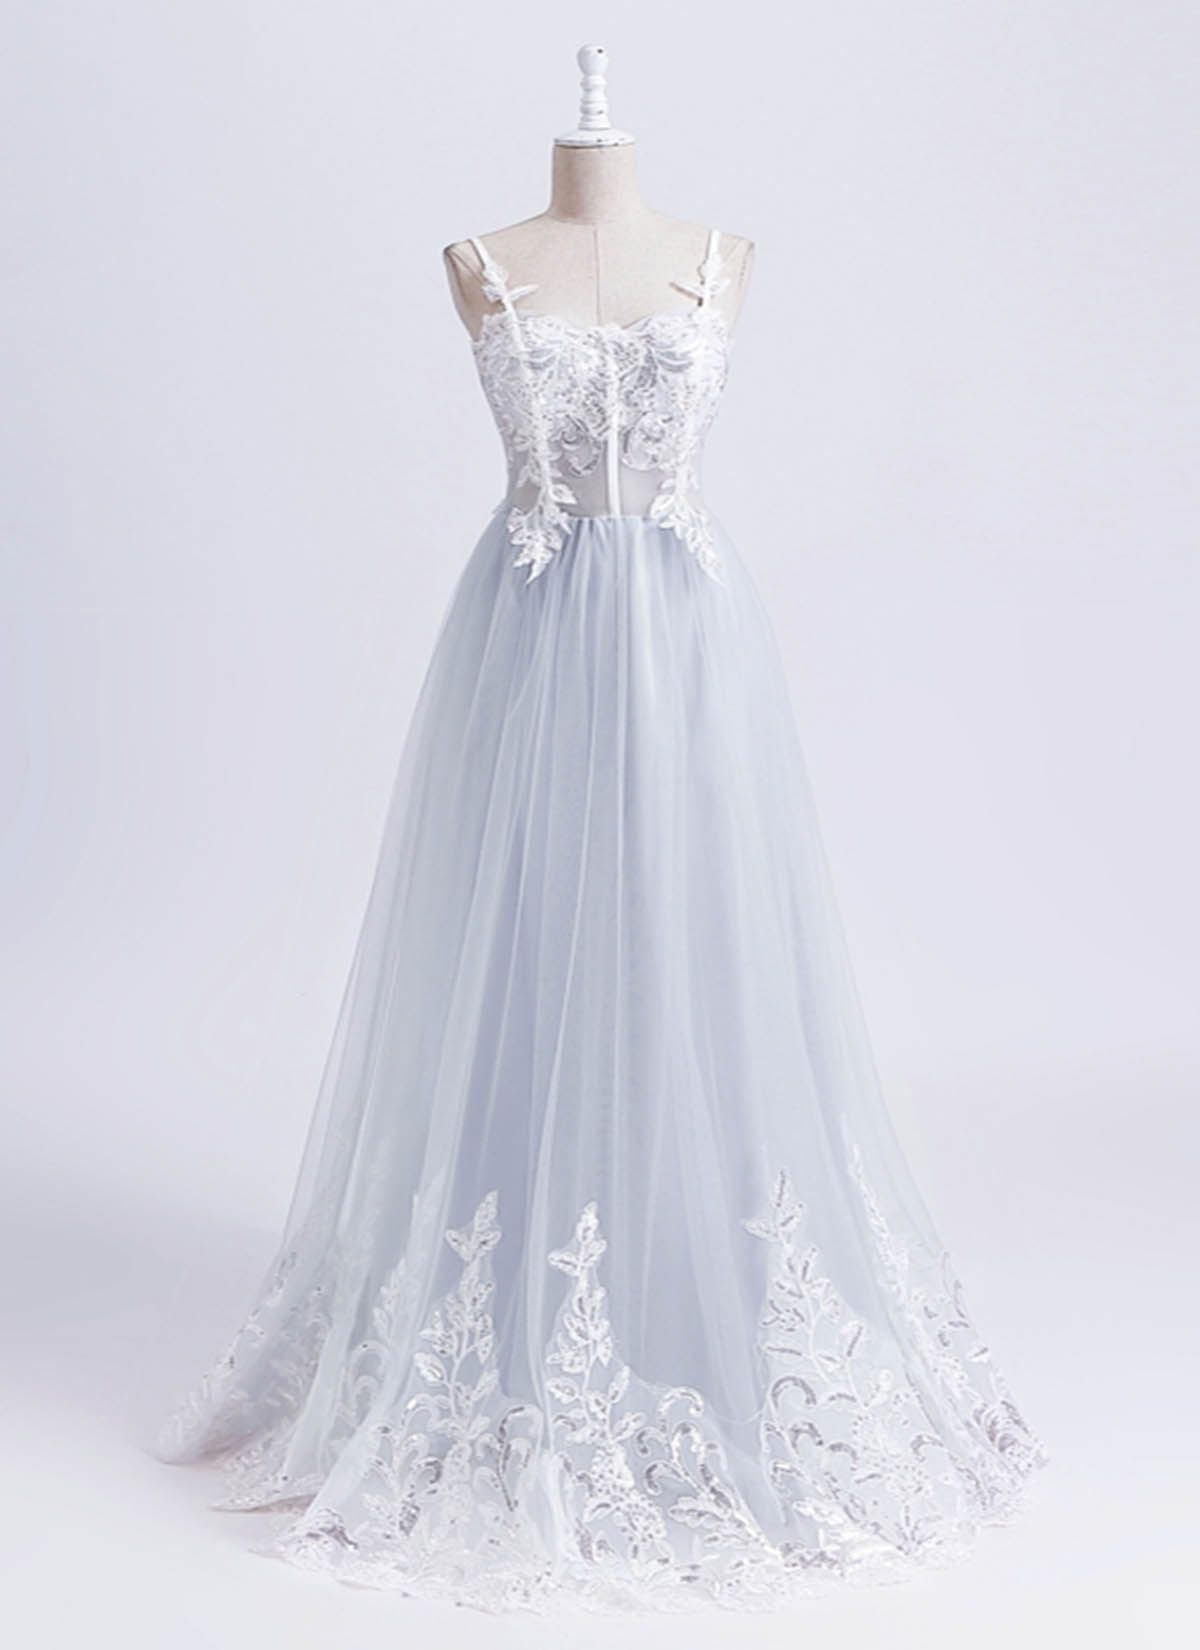 Gray tulle sweetheart neck long prom dress long lace party dress